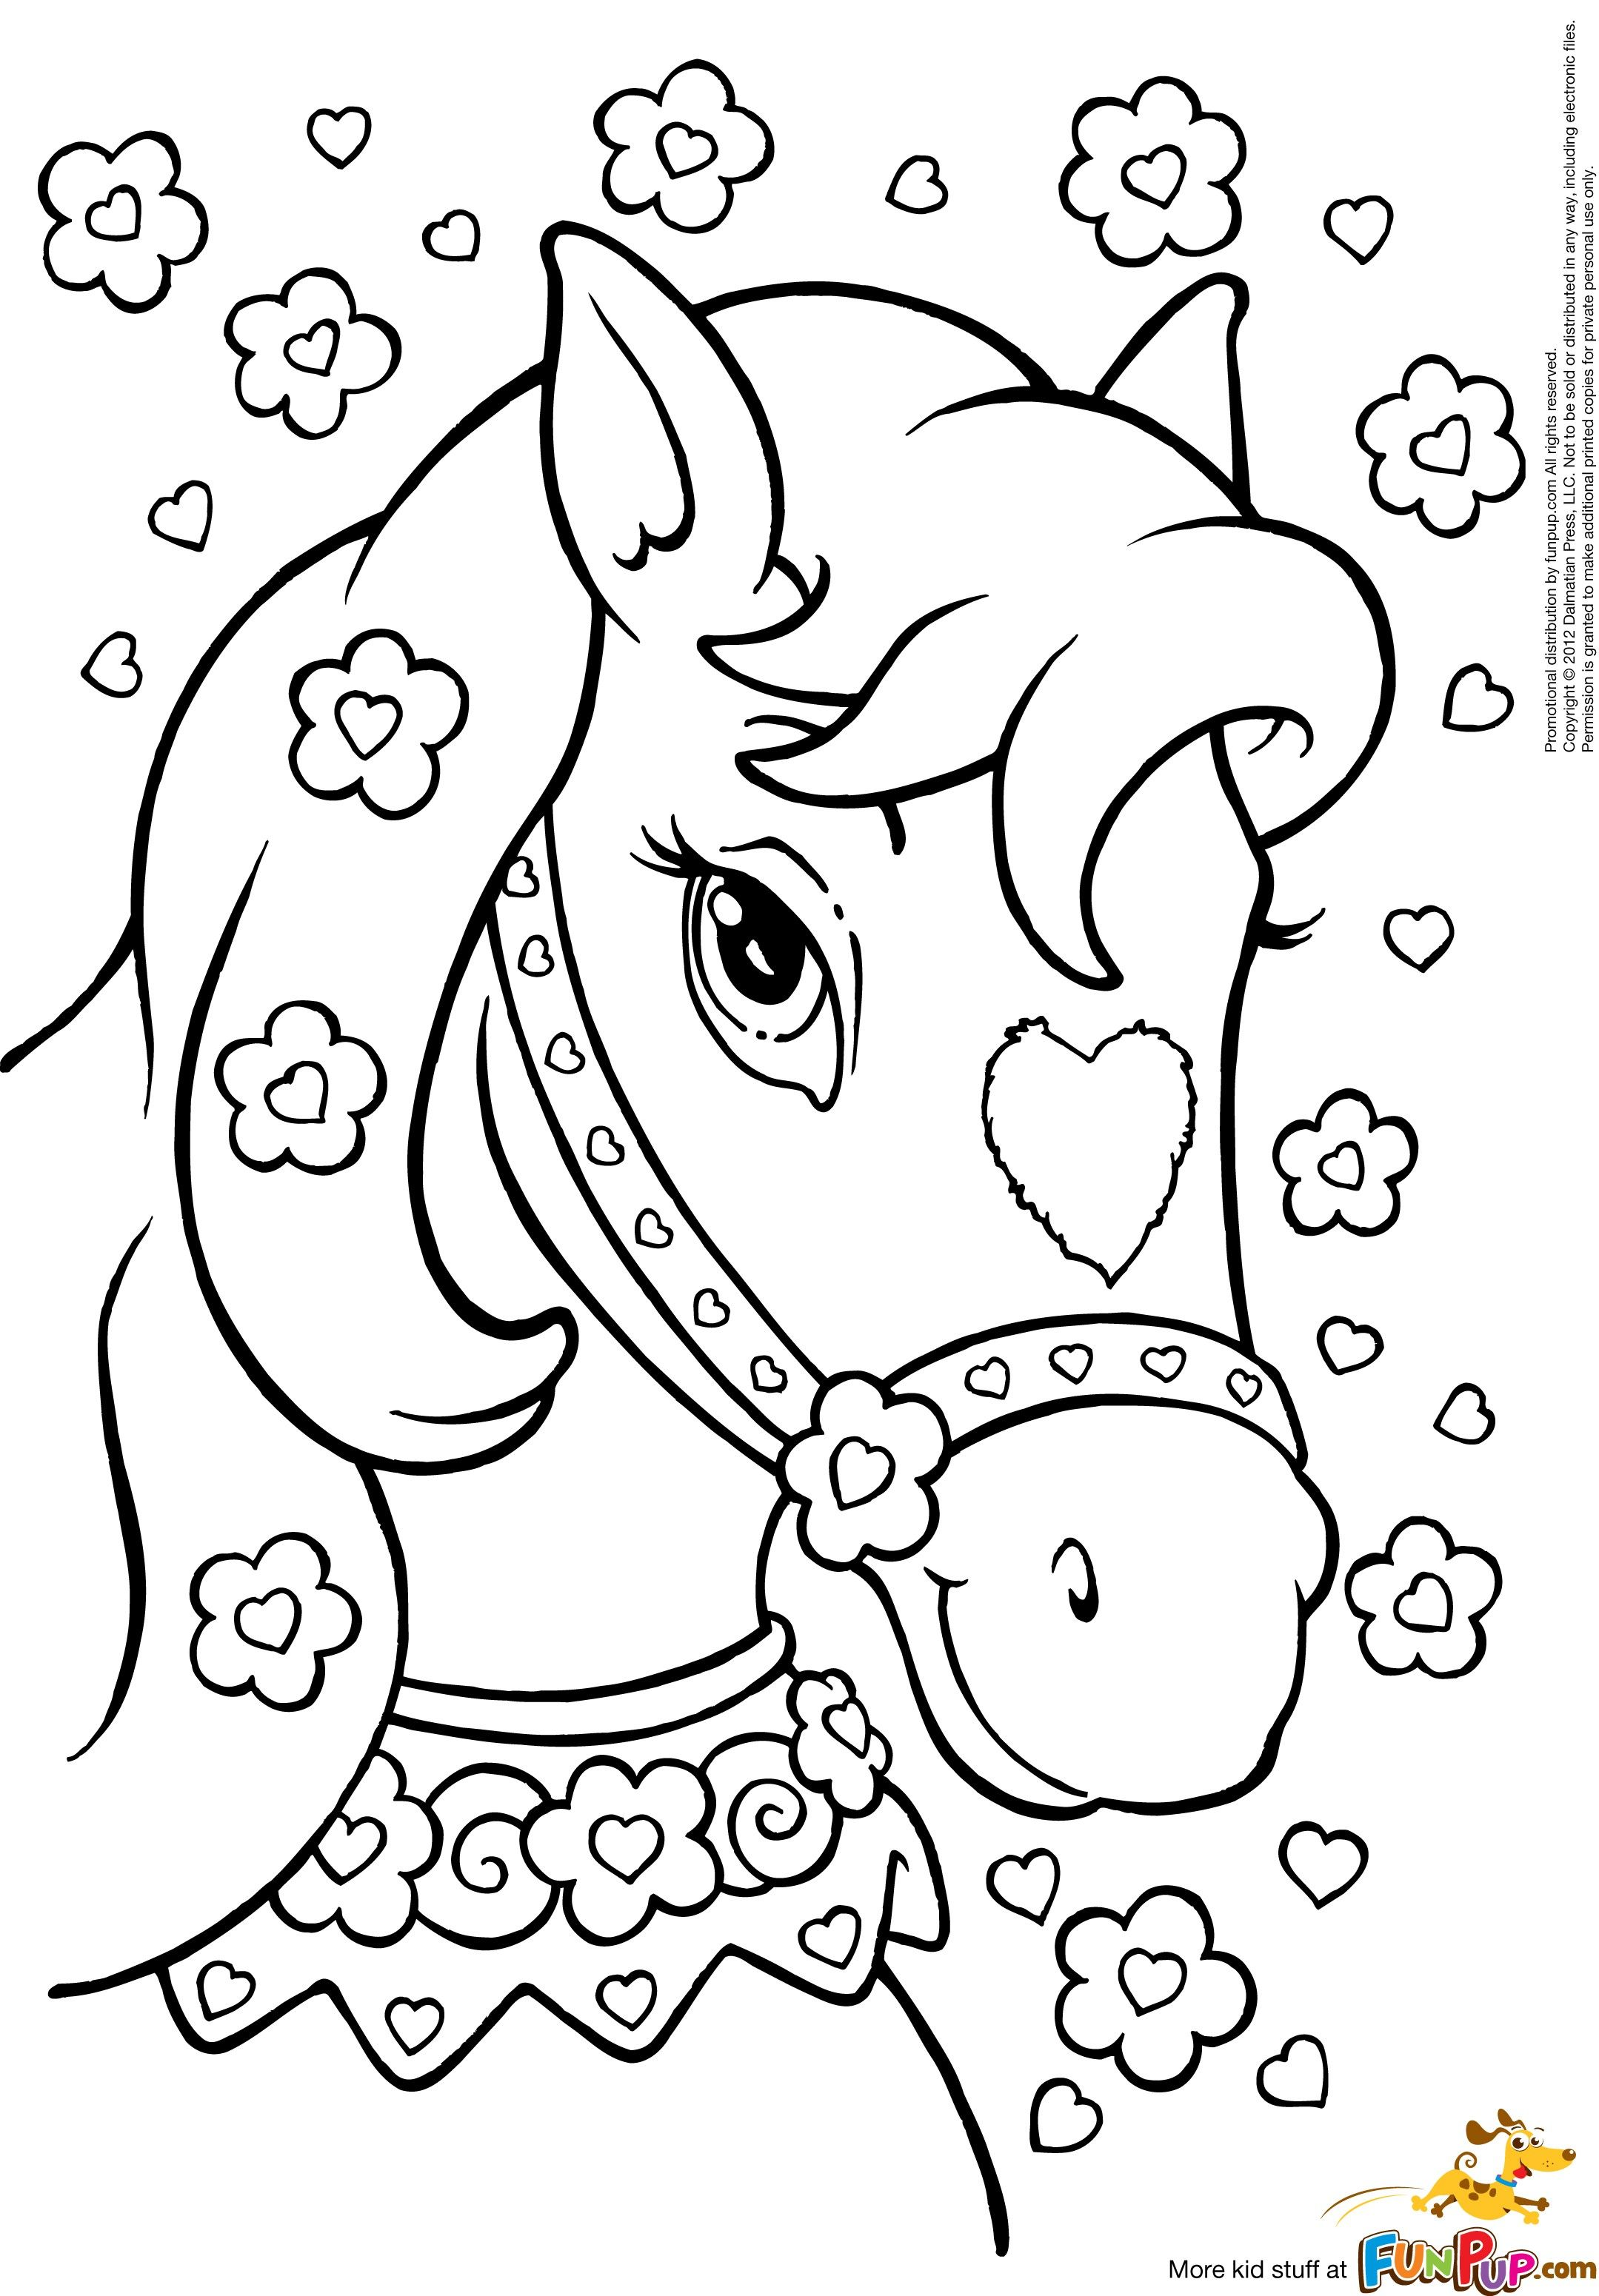 2159x3101 Weird Printable Pictures Of Princesses To Color Princess Coloring